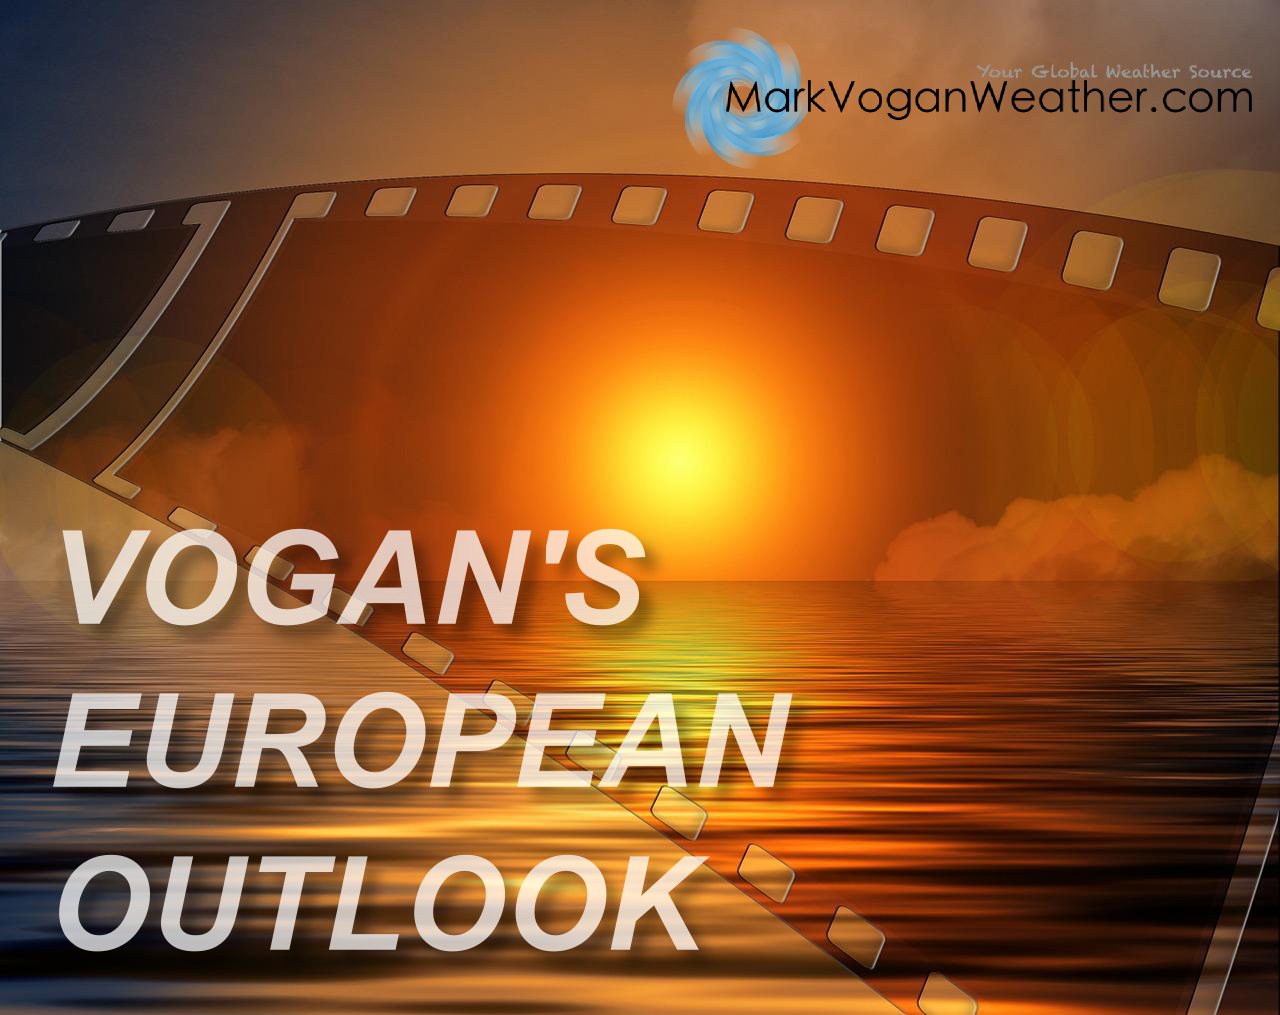 SUN 12 OCT: VOGAN'S EUROPEAN OUTLOOK